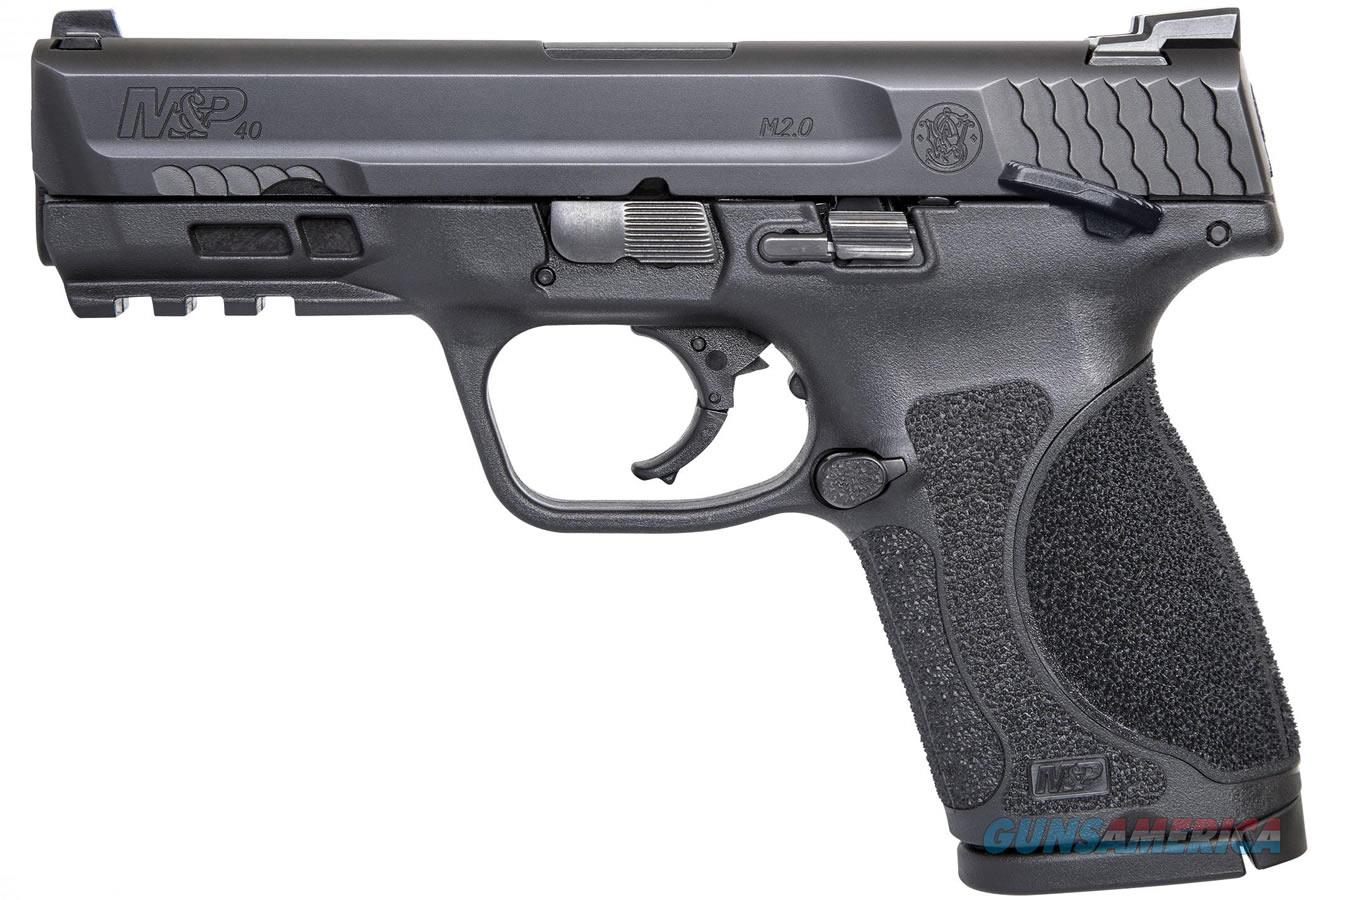 """11687 Smith & Wesson M&P 2.0, Striker Fired, Compact Frame, 40 S&W, 4"""" Barrel, Polymer Frame, Black Finish, 13Rd, 2 Magazines, Thumb Safety, Fixed Sights  Guns > Pistols > Smith & Wesson Pistols - Autos > Polymer Frame"""